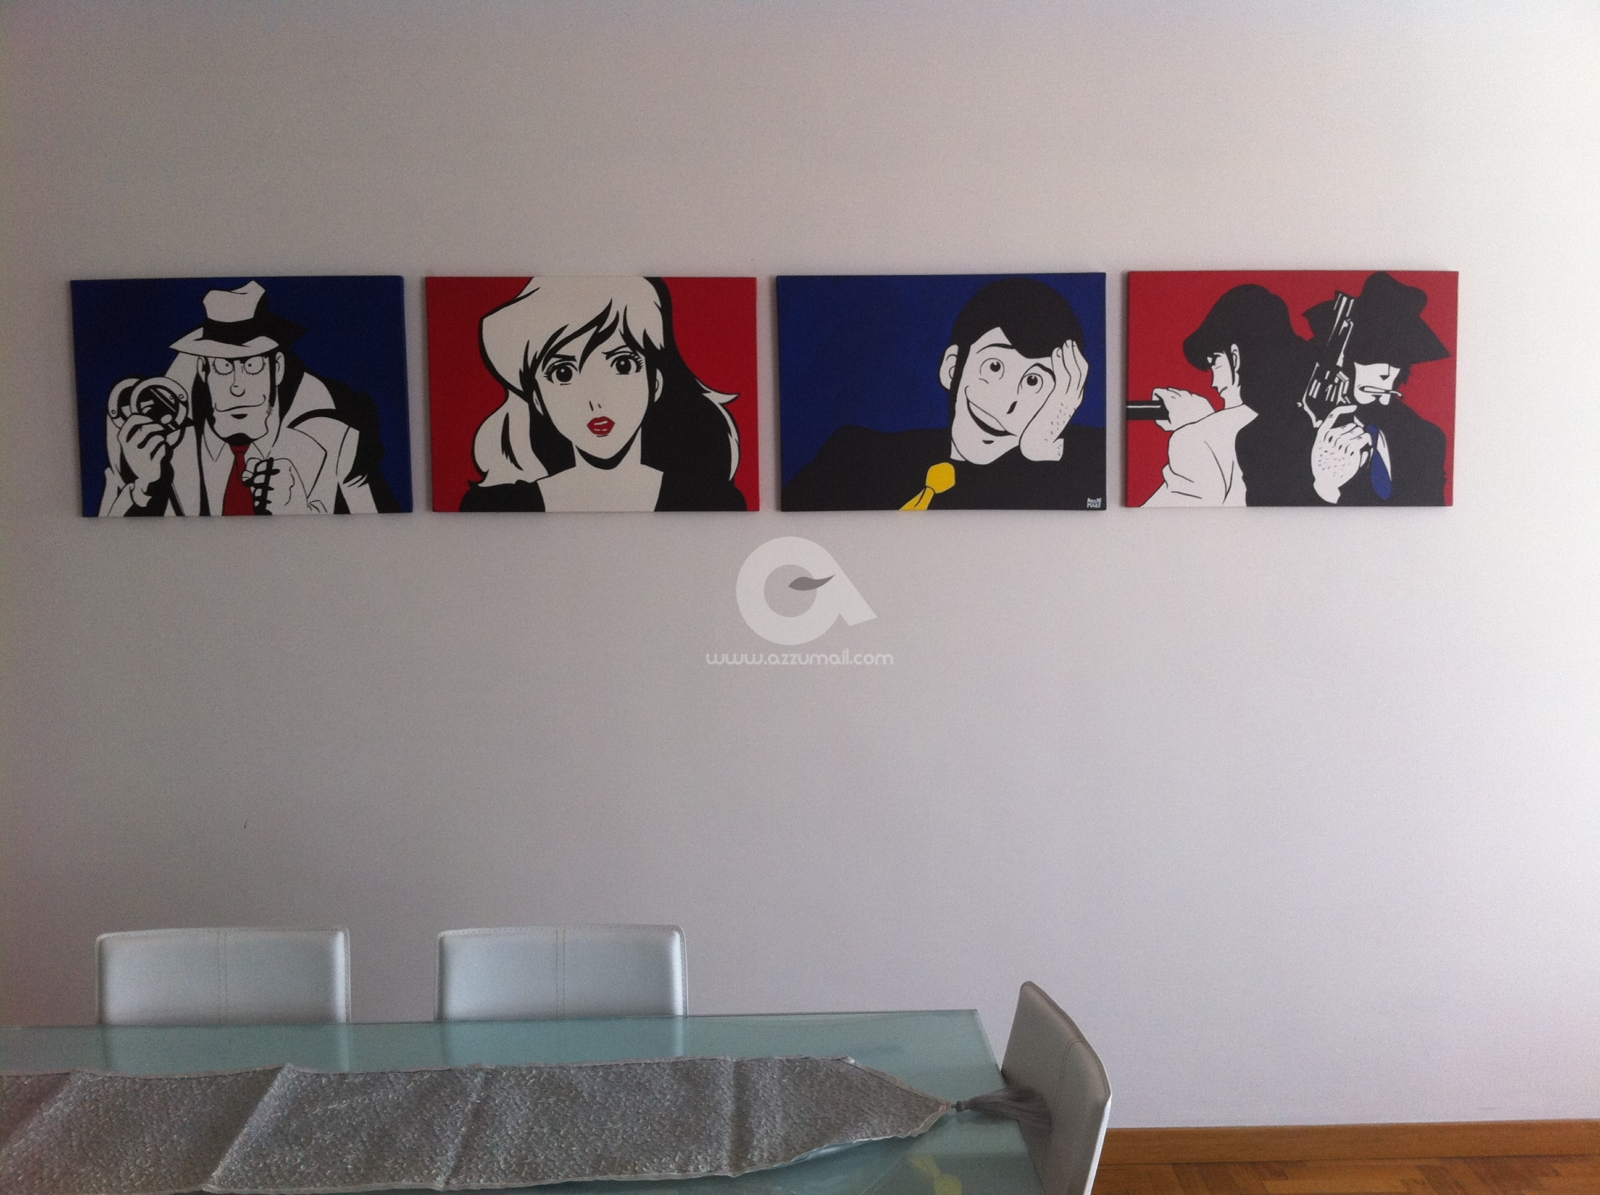 Foto galleria di quadri moderni stile pop art dipinti a for Arredamento pop art